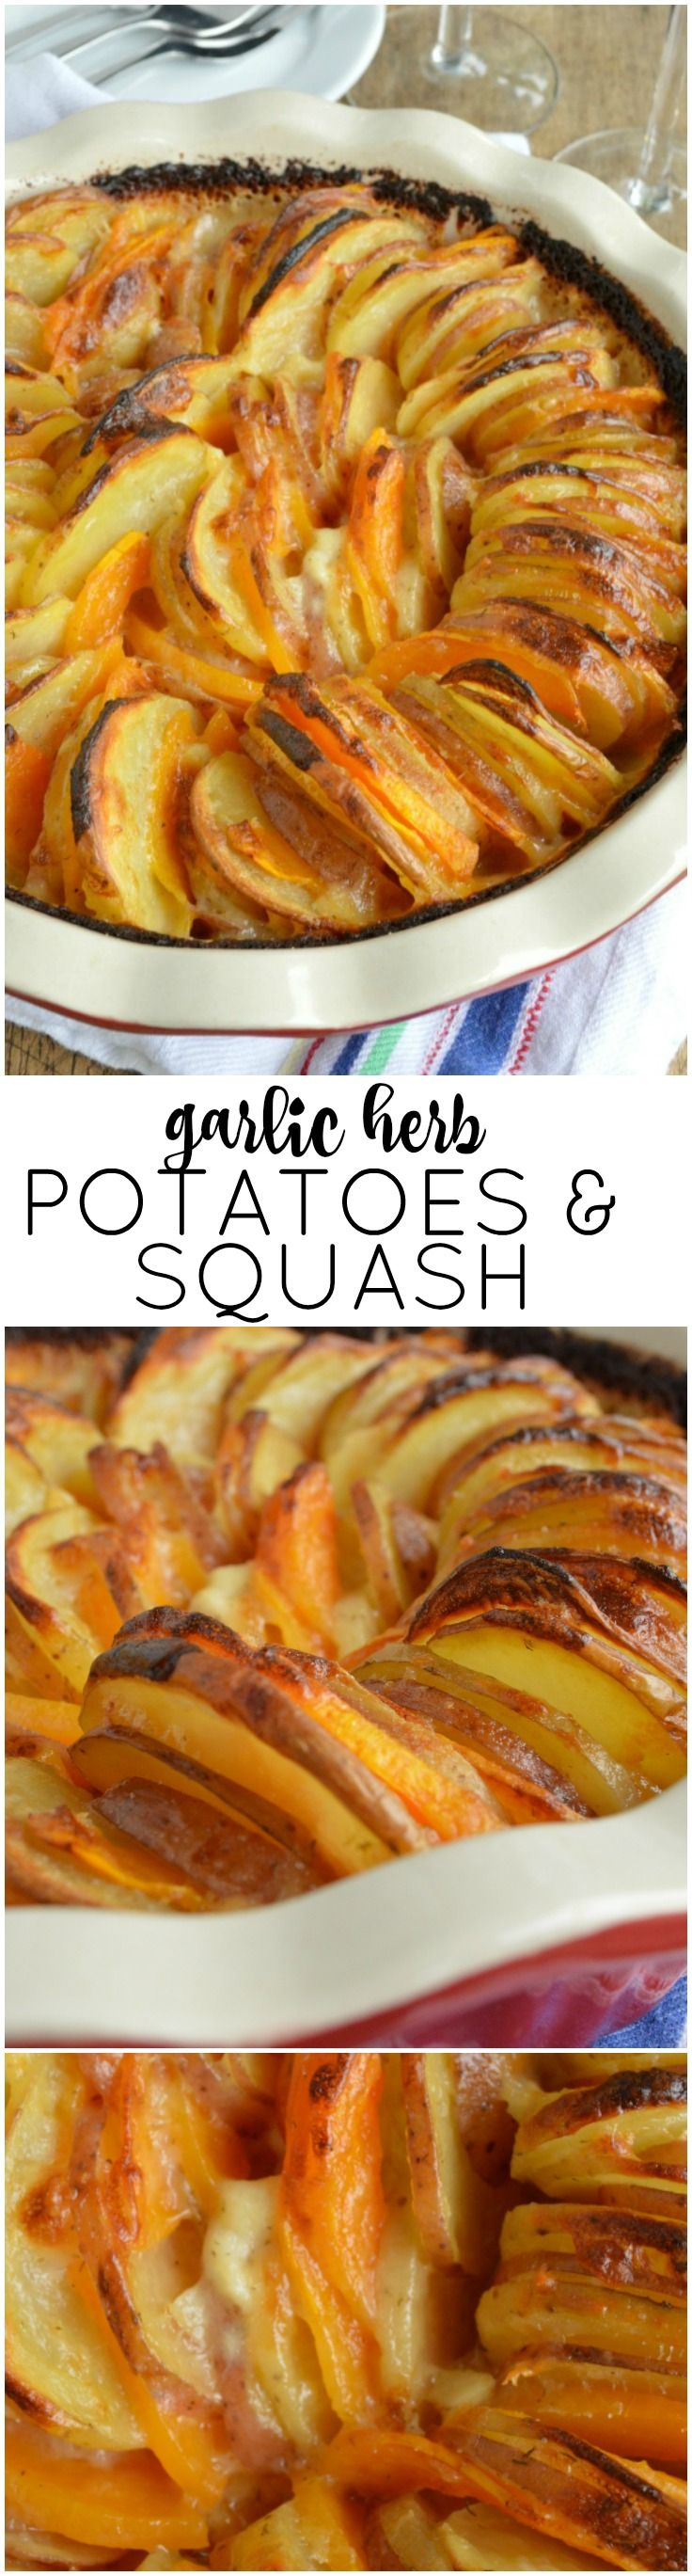 This Garlic Herb Potatoes and Squash Casserole is a great addition to the Thanksgiving table!